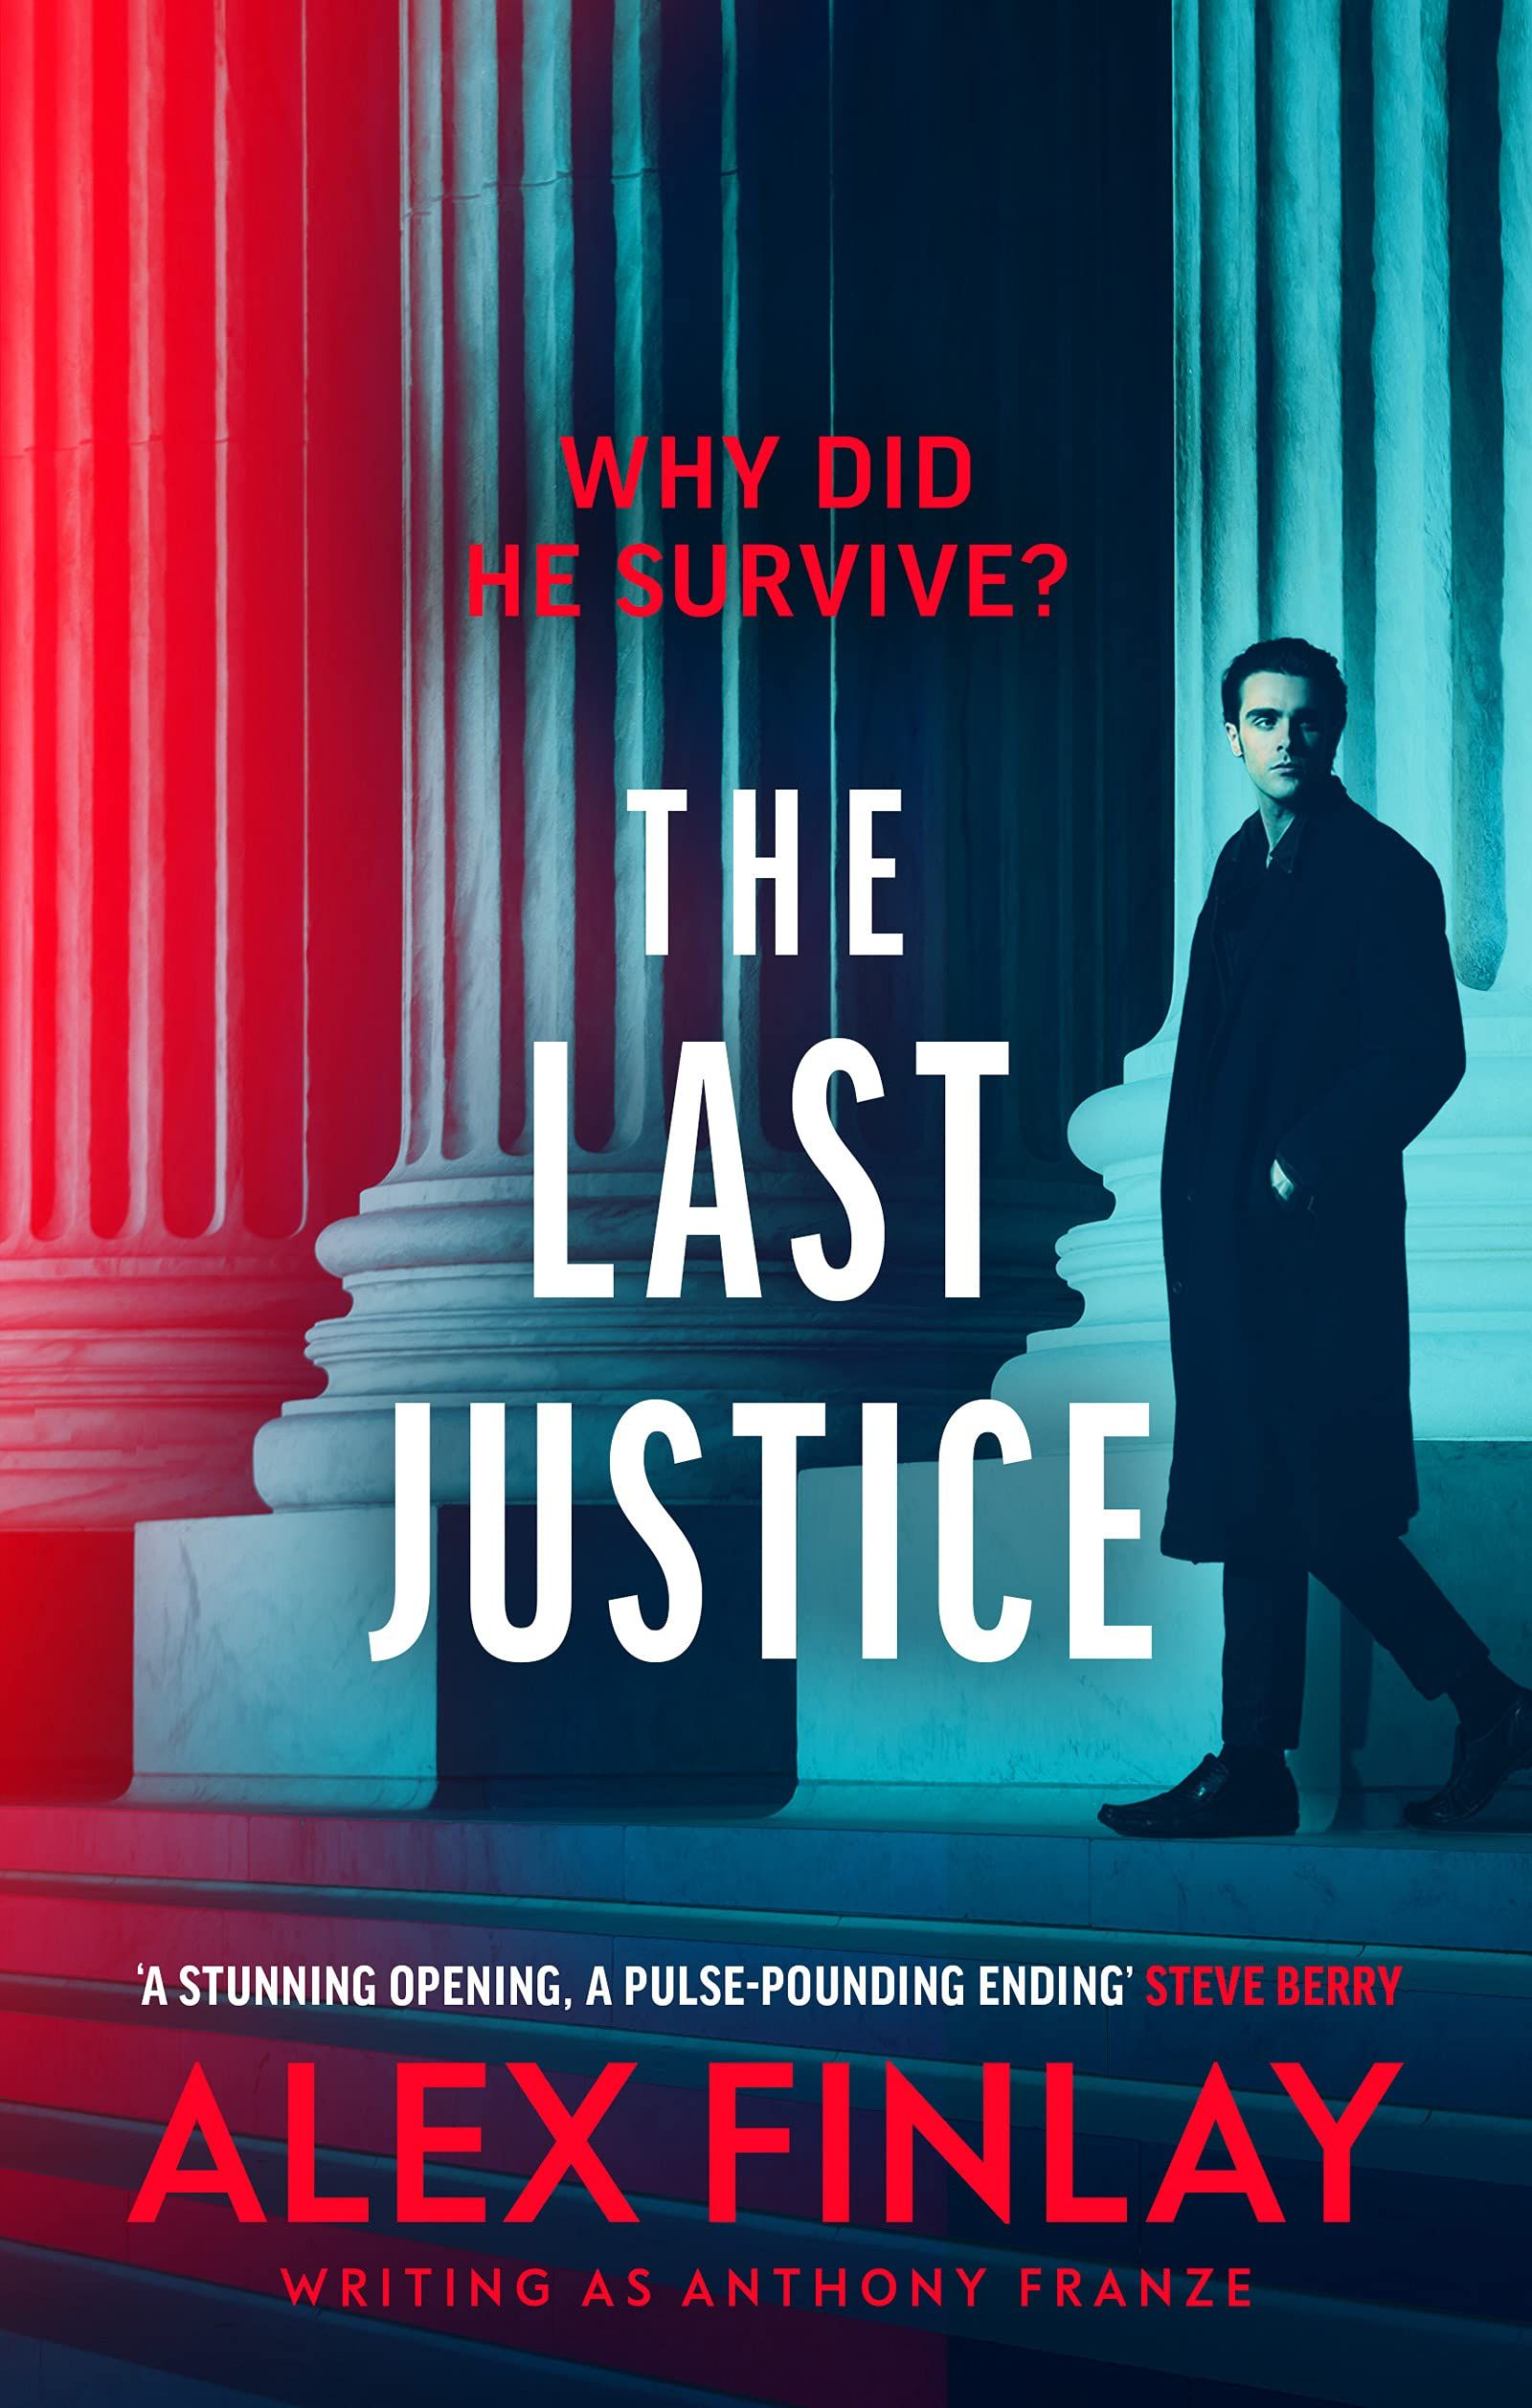 The Last Justice